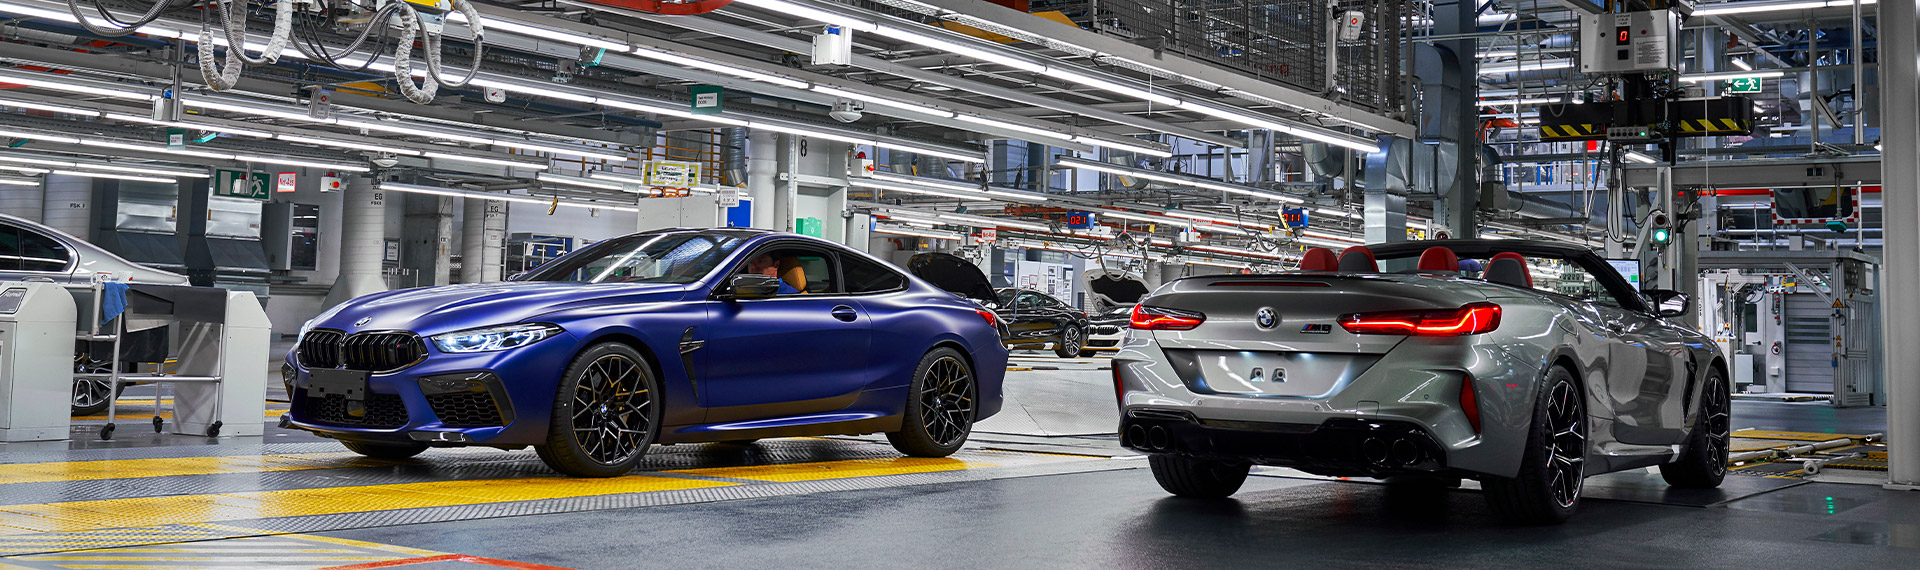 New BMW 8 Series models in production